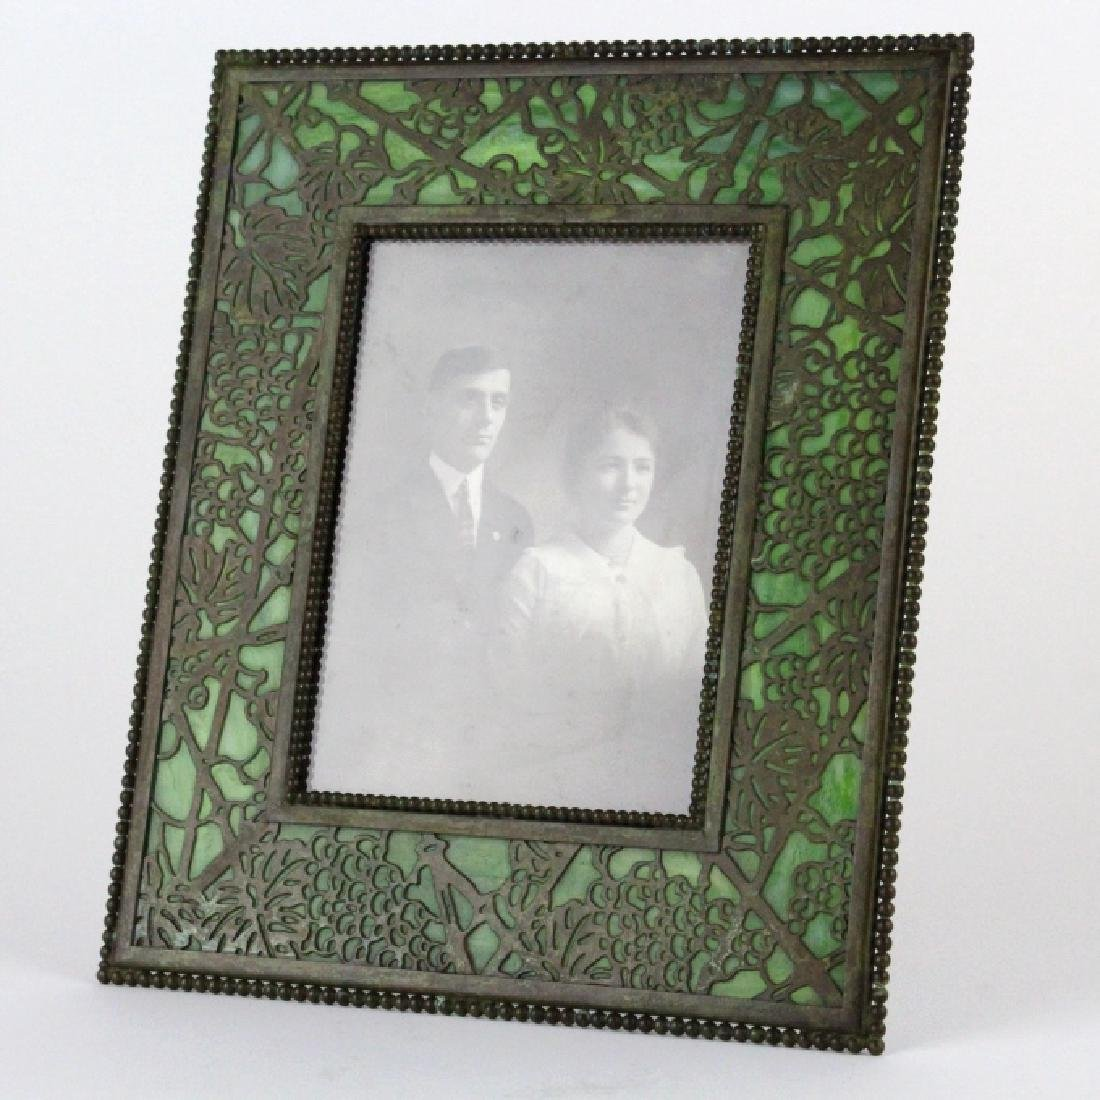 Tiffany Studios Grapevine Glass Picture Frame